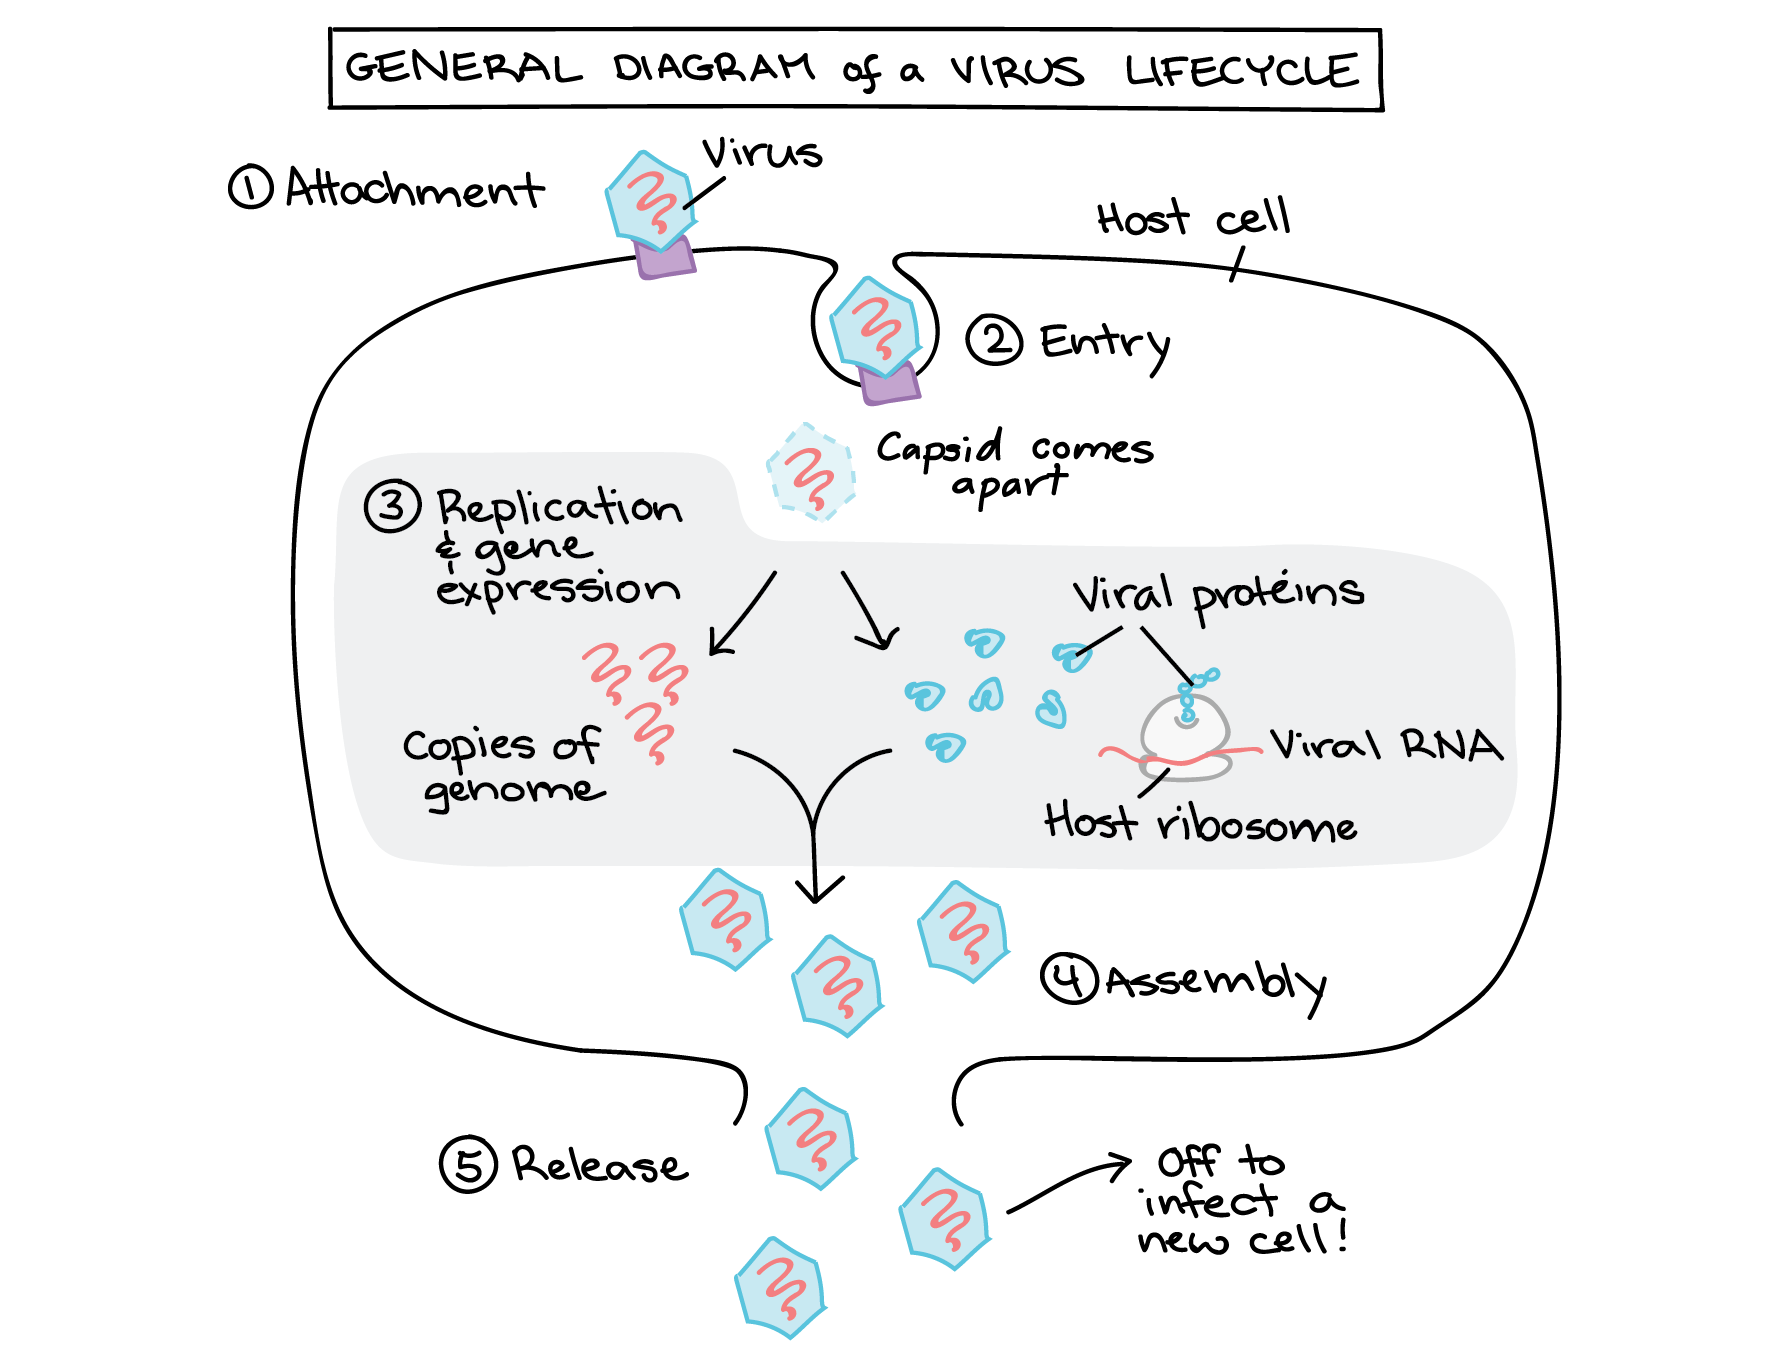 Steps of a viral infection, illustrated generically for a virus with a + sense RNA genome.  1. Attachment. Virus binds to receptor on cell surface.  2. Entry. Virus enters cell by endocytosis. In the cytoplasm, the capsid comes apart, releasing the RNA genome.  3. Replication and gene expression. The RNA genome is copied (this would be done by a viral enzyme, not shown) and translated into viral proteins using a host ribosome. The viral proteins produced include capsid proteins.  4. Assembly. Capsid proteins and RNA genomes come together to make new viral particles.  5. Release. The cell lyses (bursts), releasing the viral particles, which can then infect other host cells.